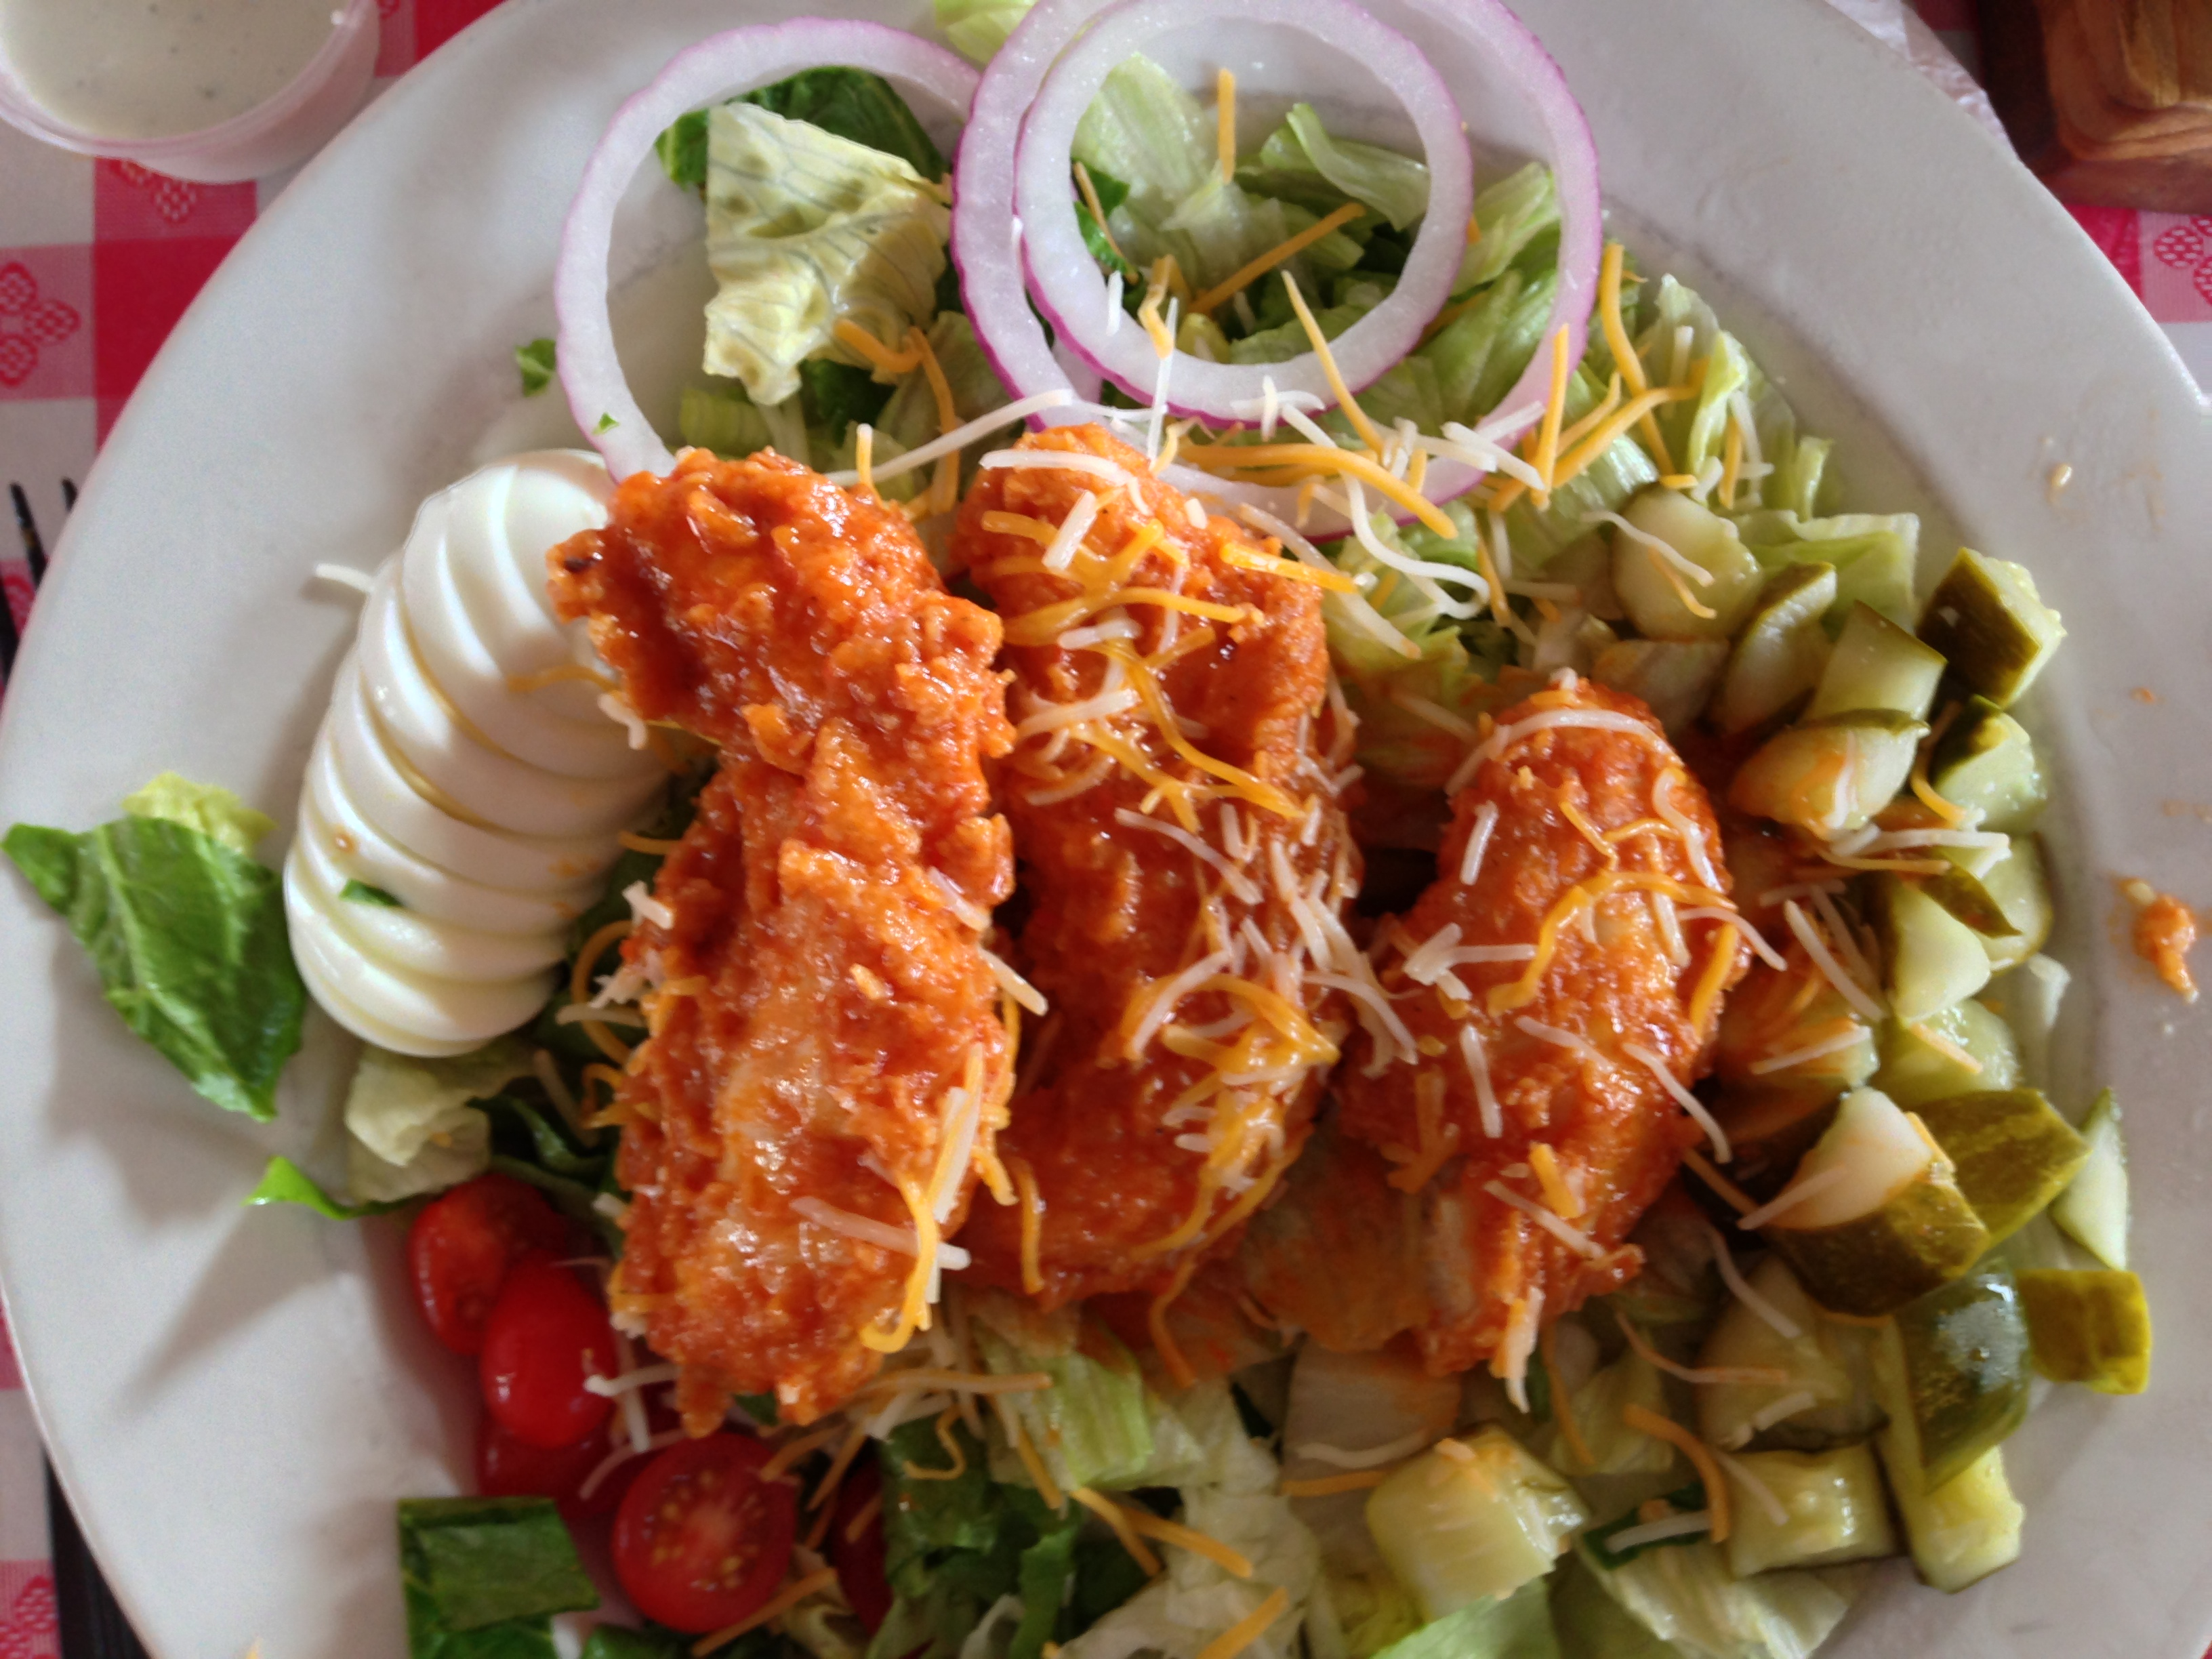 Champy's Buffalo Fried Chicken Salad